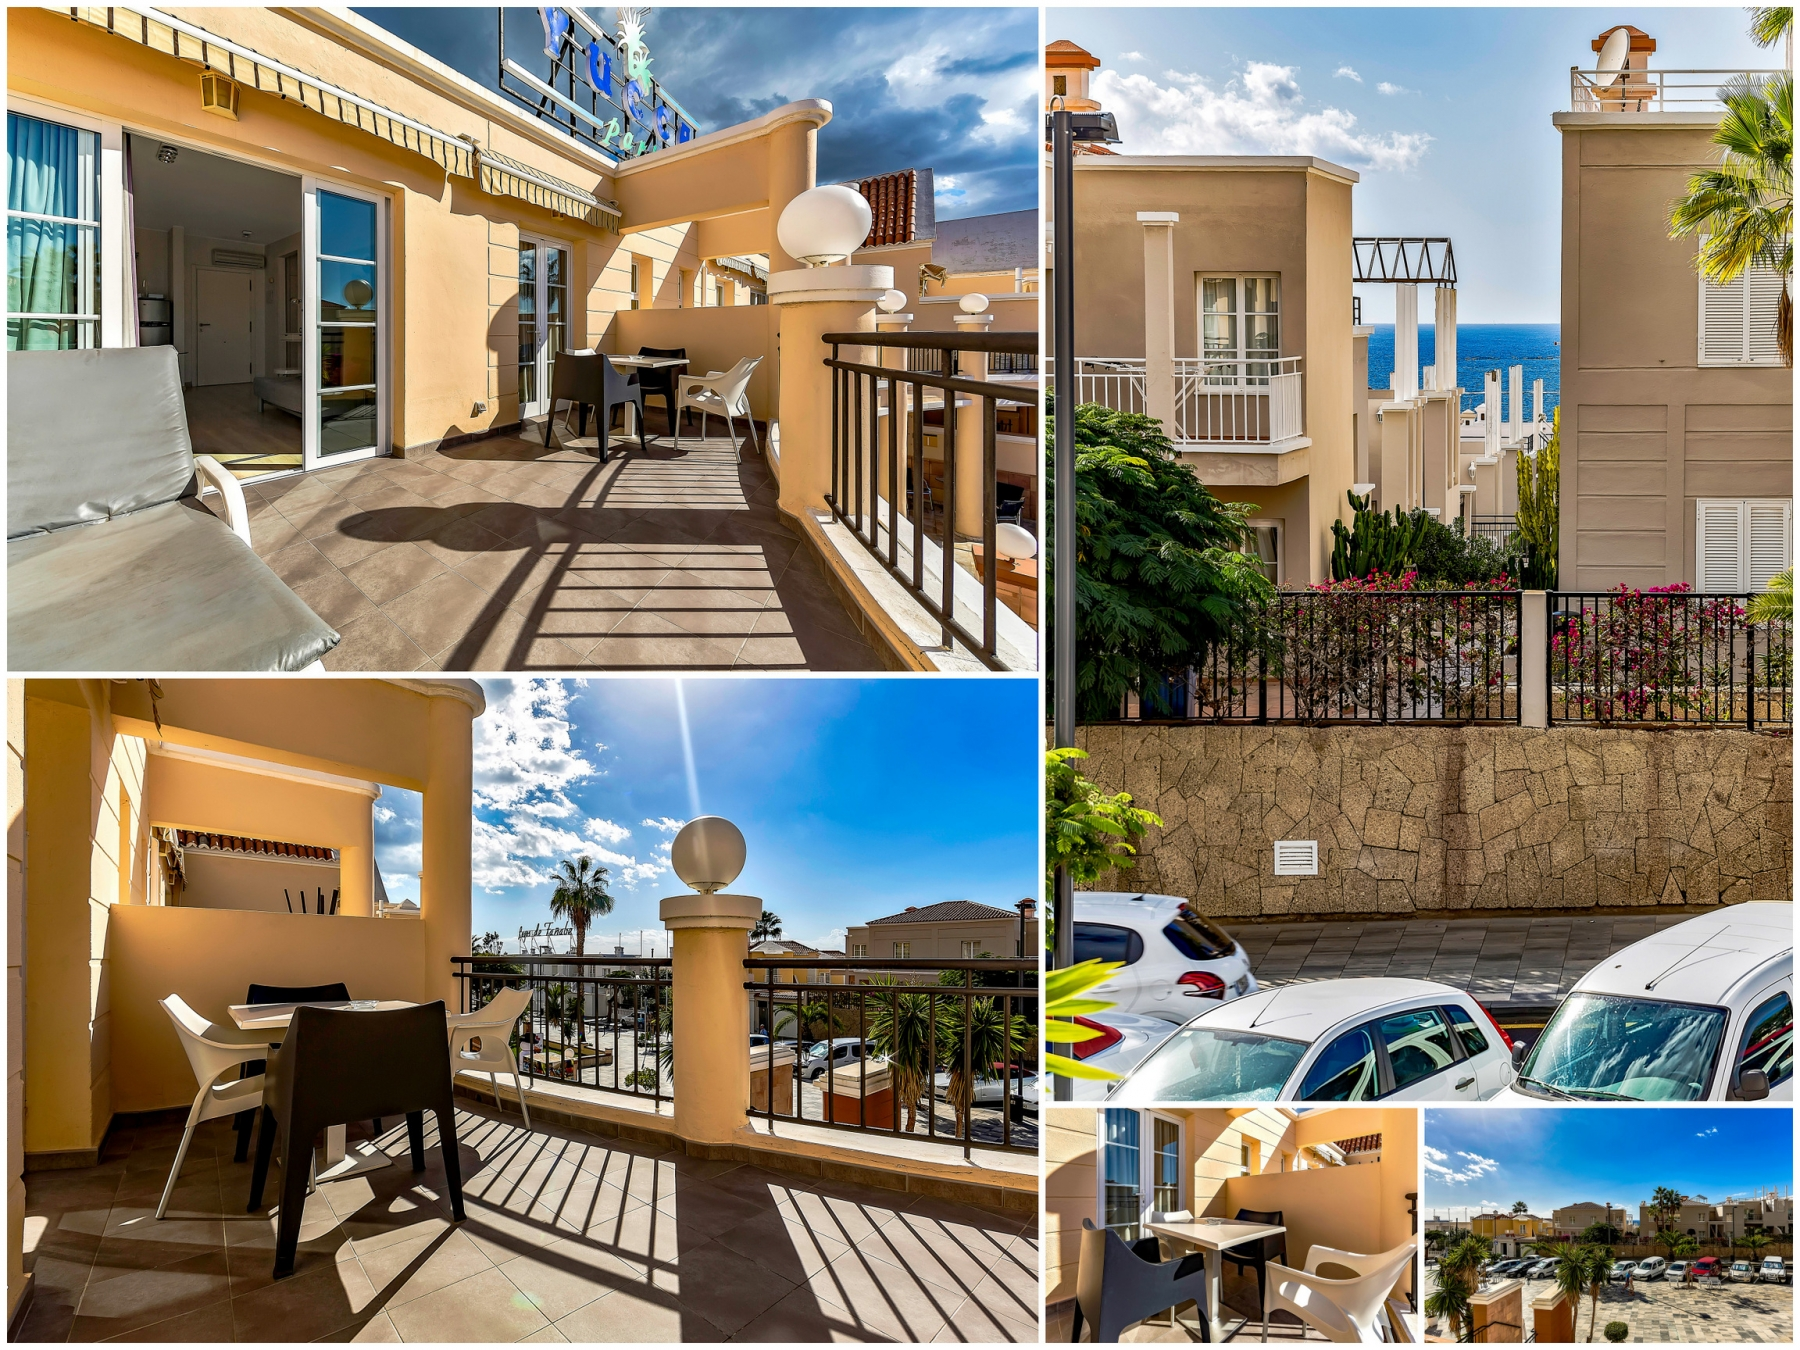 Properties for Sale in Tenerife, Canary Islands, Spain | SylkWayStar Real Estate. 1 bedroom apartment Yucca Park. Image-22563